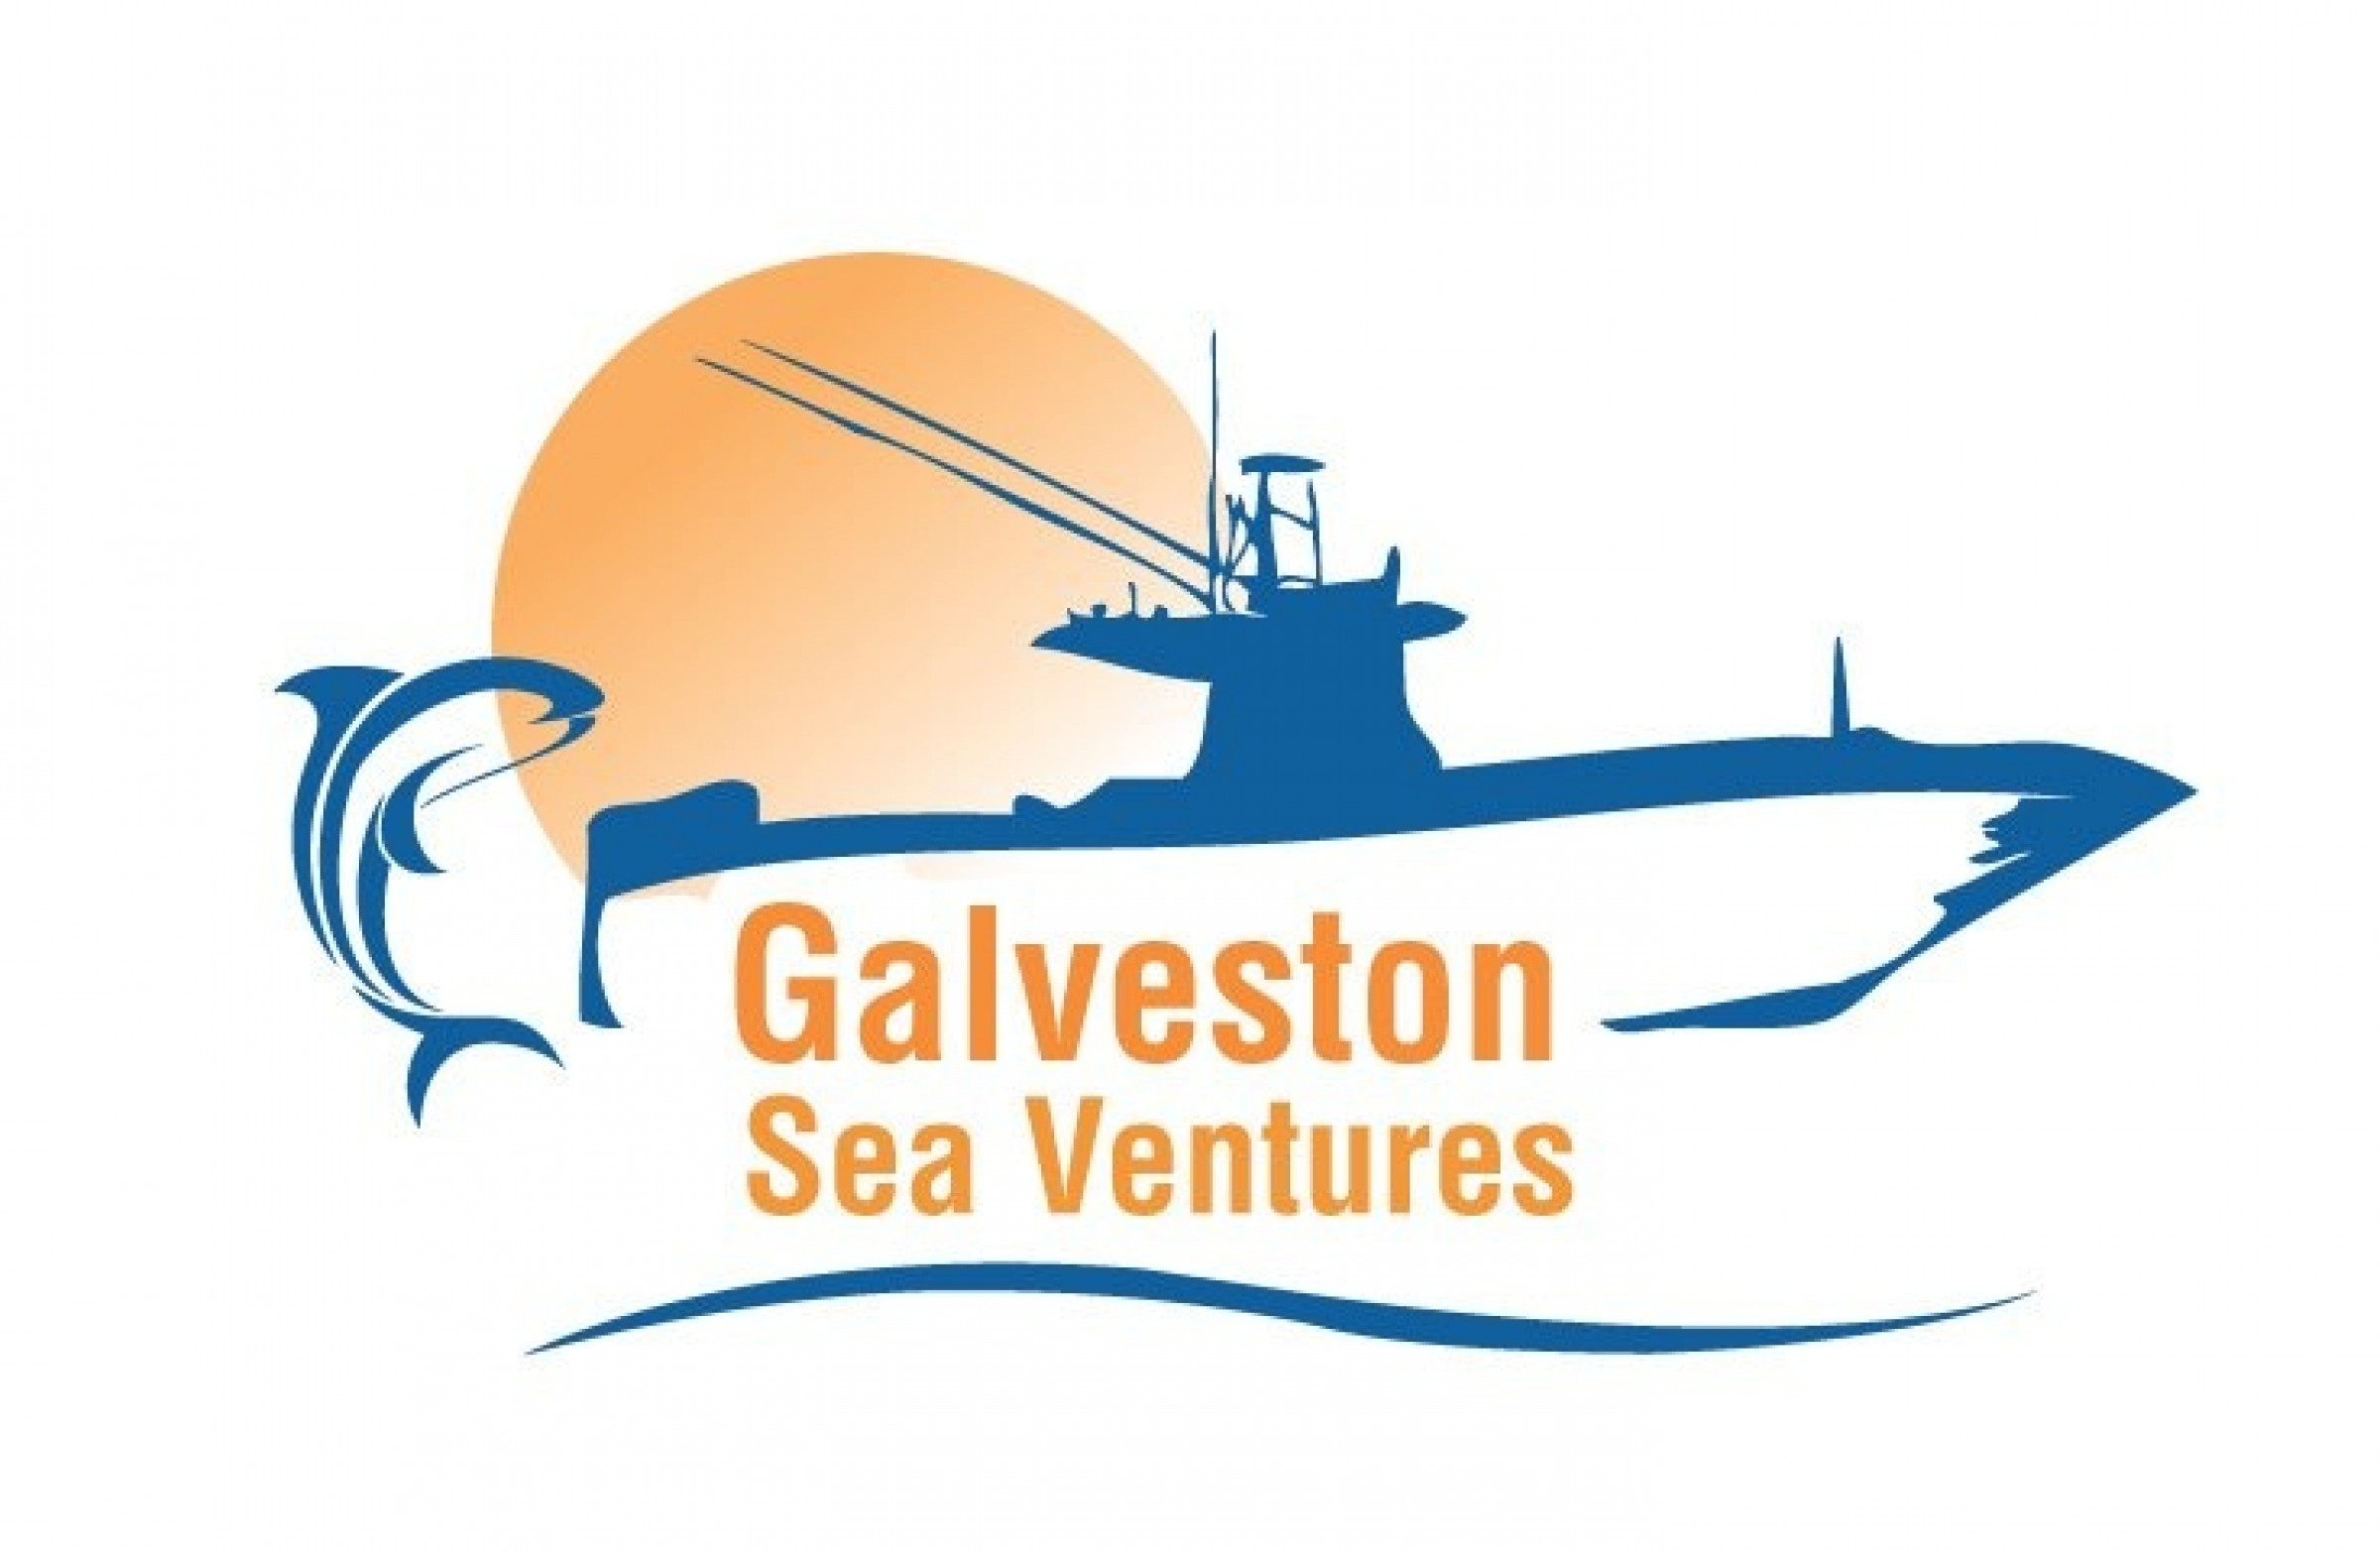 Galveston Sea Ventures photo gallery